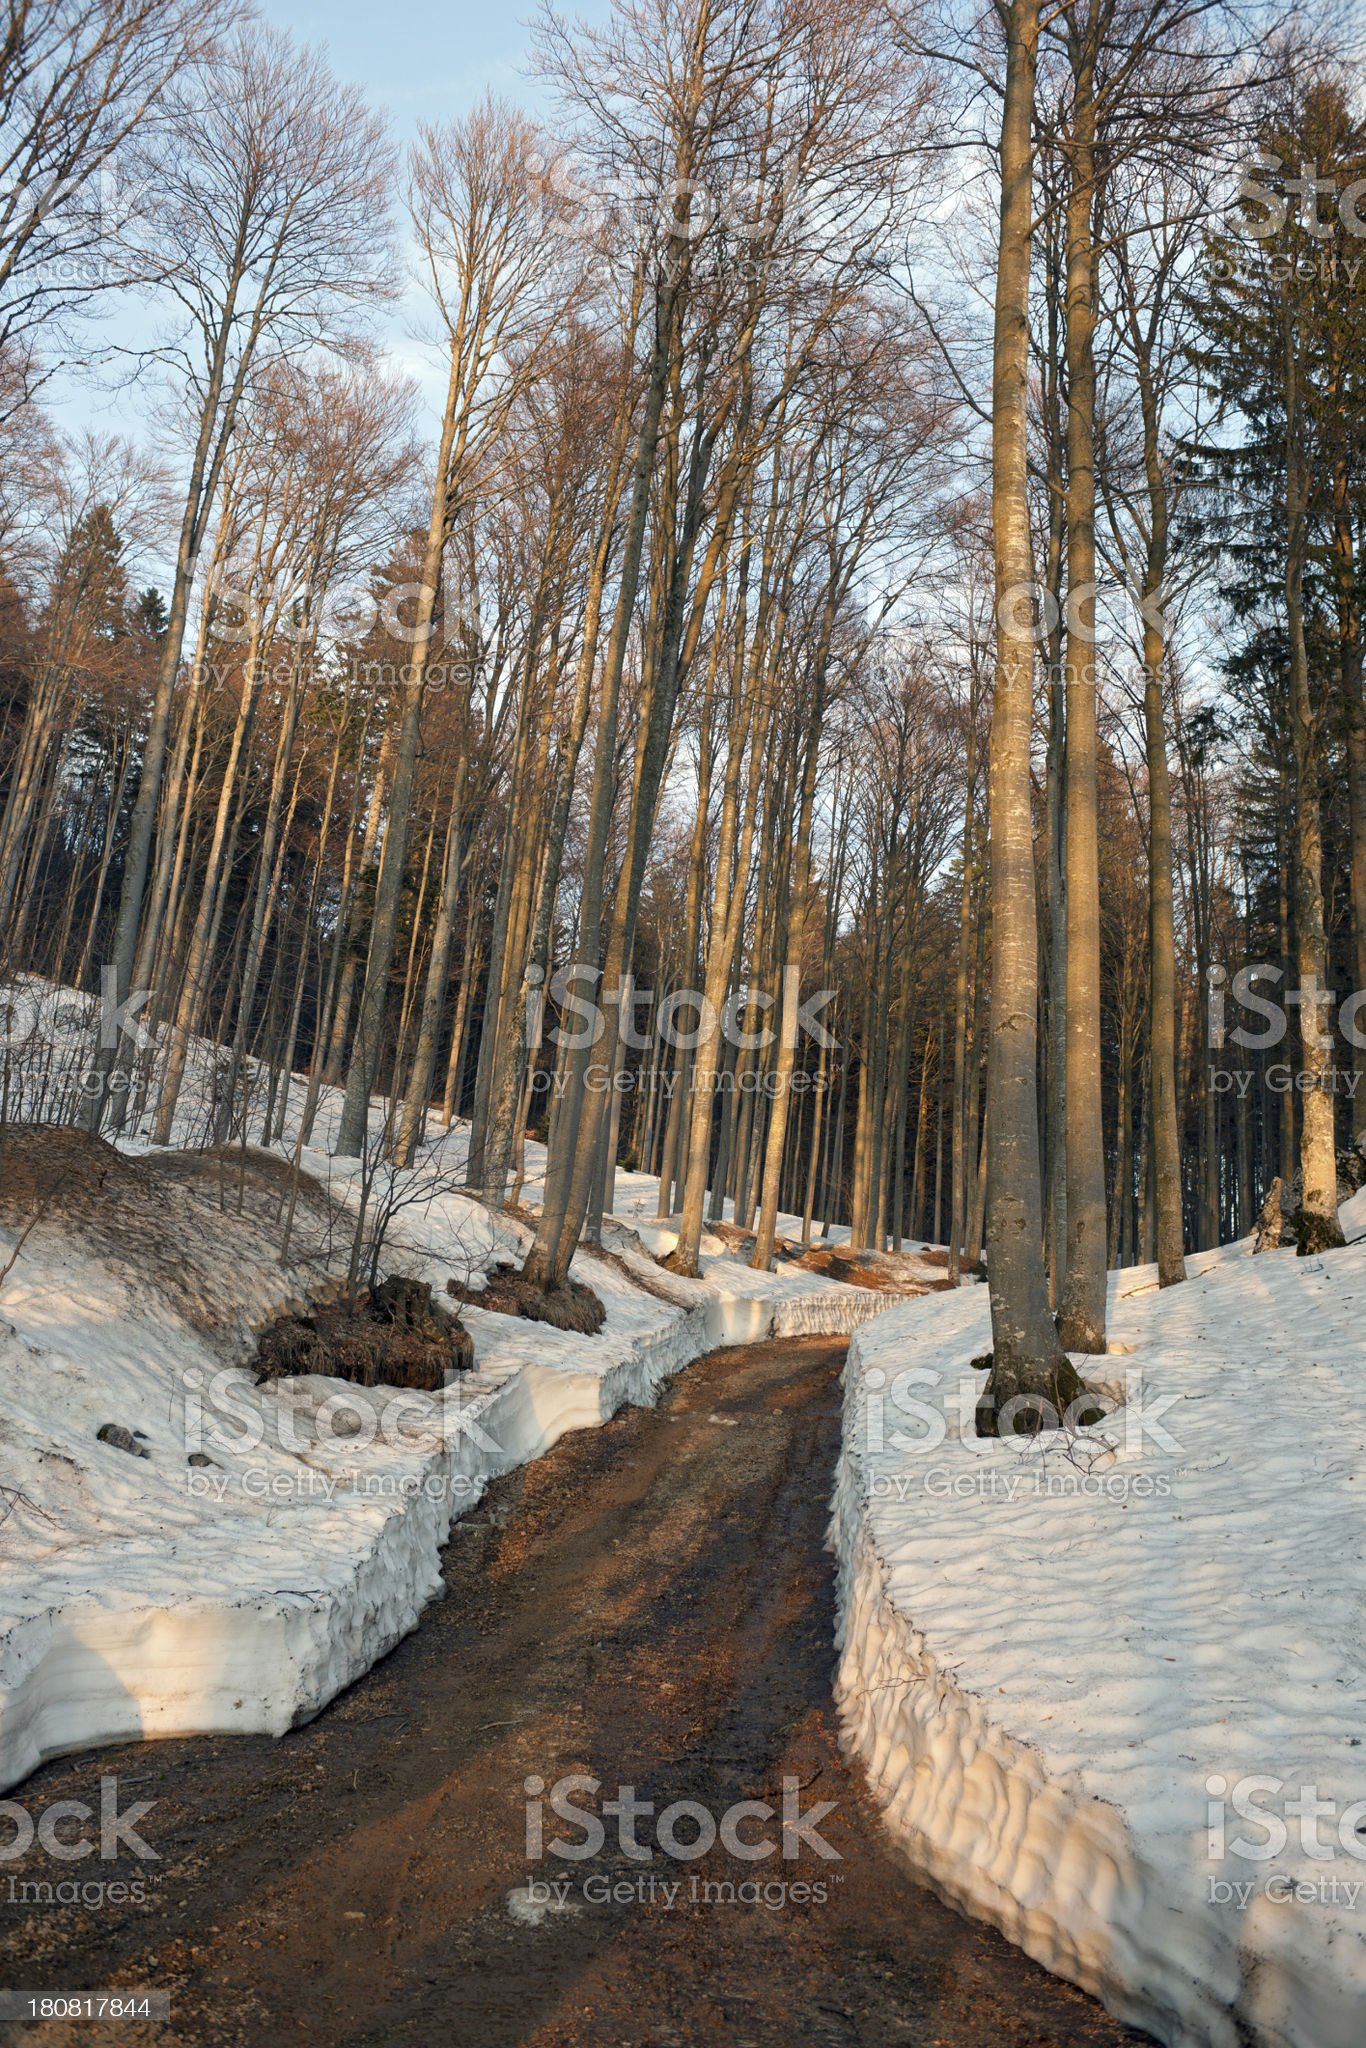 Muddy Road in Snowy Forest Slovenia royalty-free stock photo